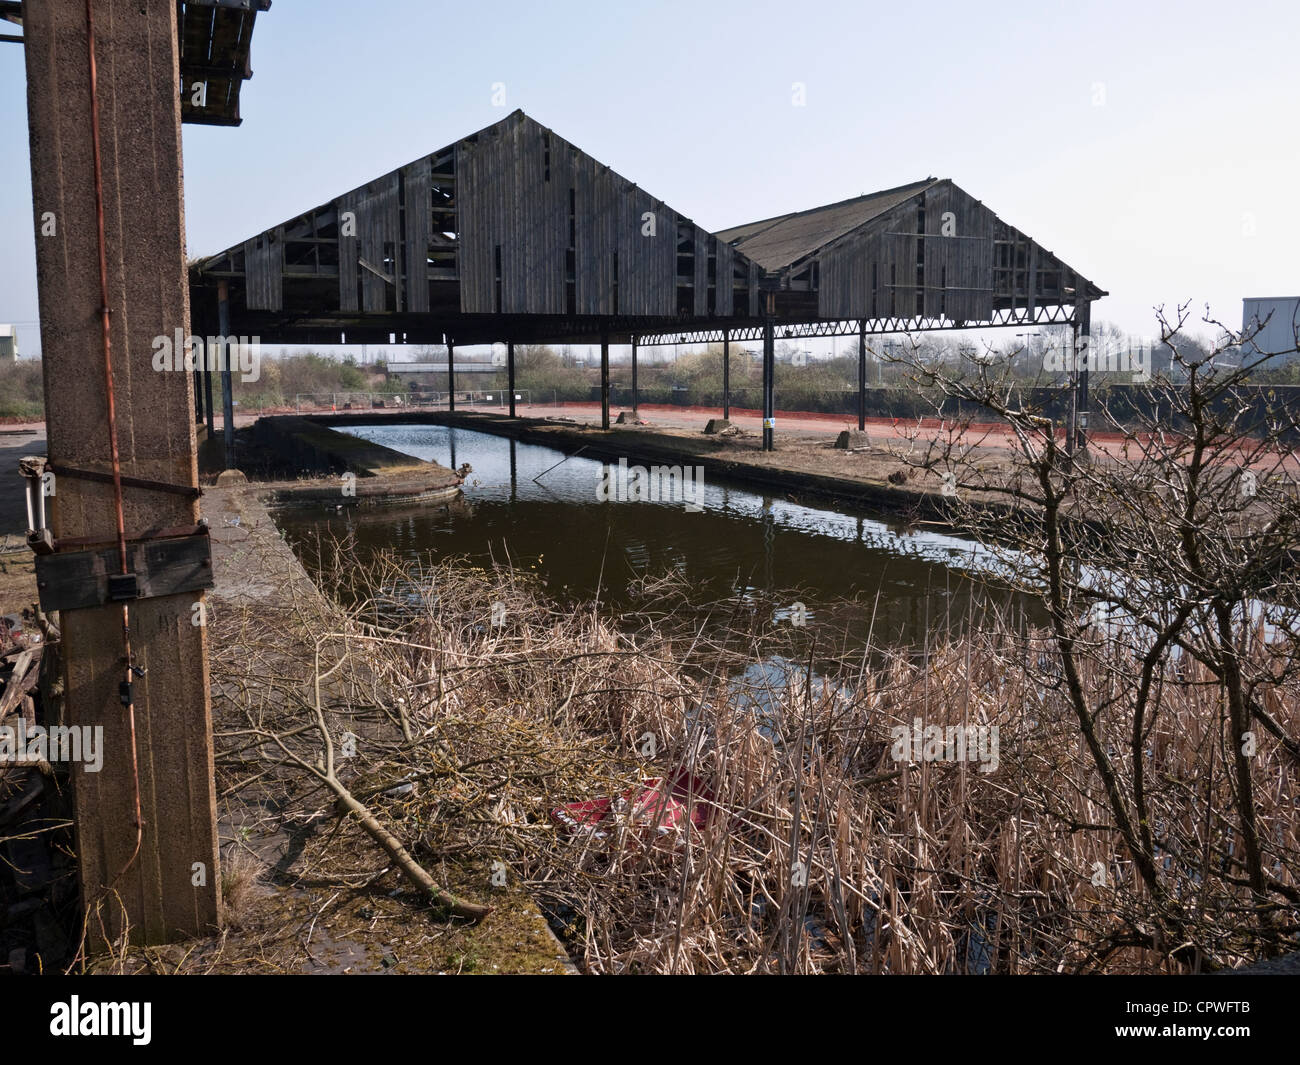 Chillington Wharf, a derelict Grade II listed 19th century canal-railway cargo interchange basin in the city of - Stock Image